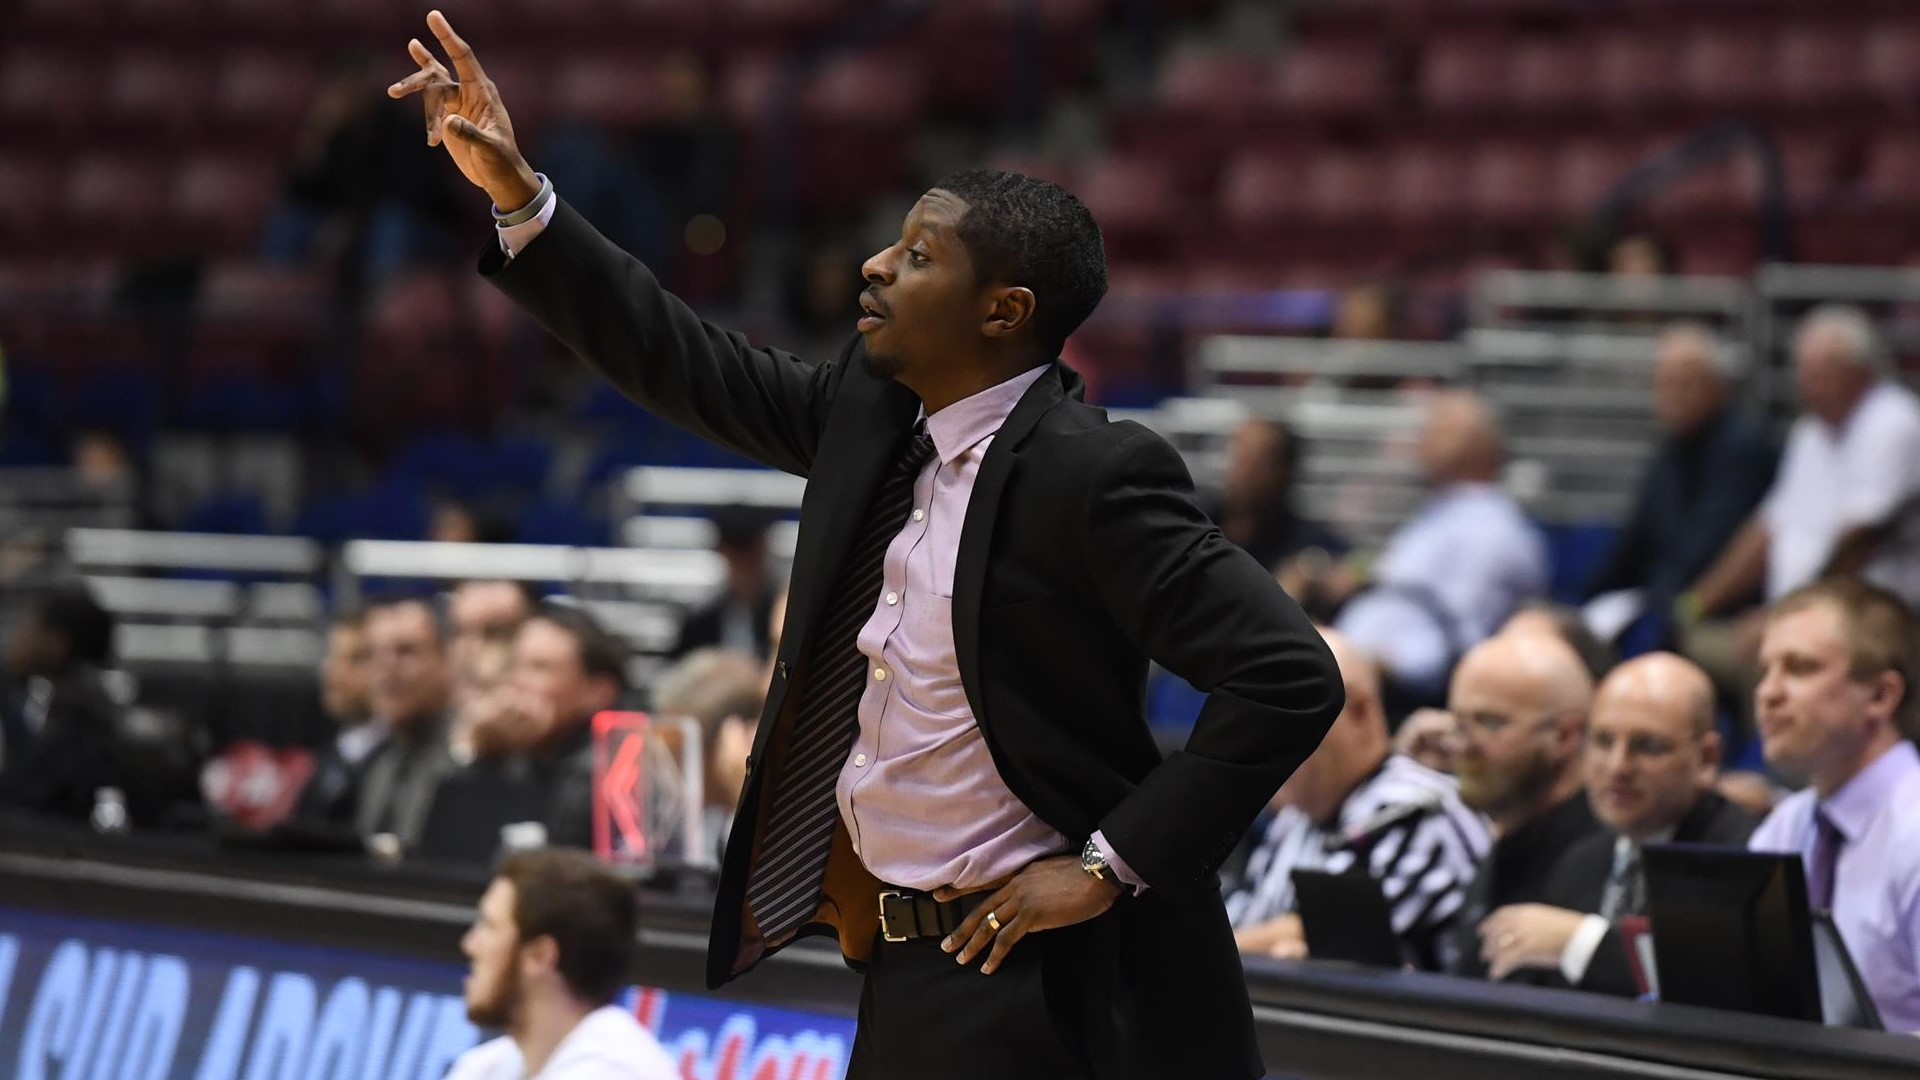 Men's Basketball: Taylor Promoted to Associate Head Coach)